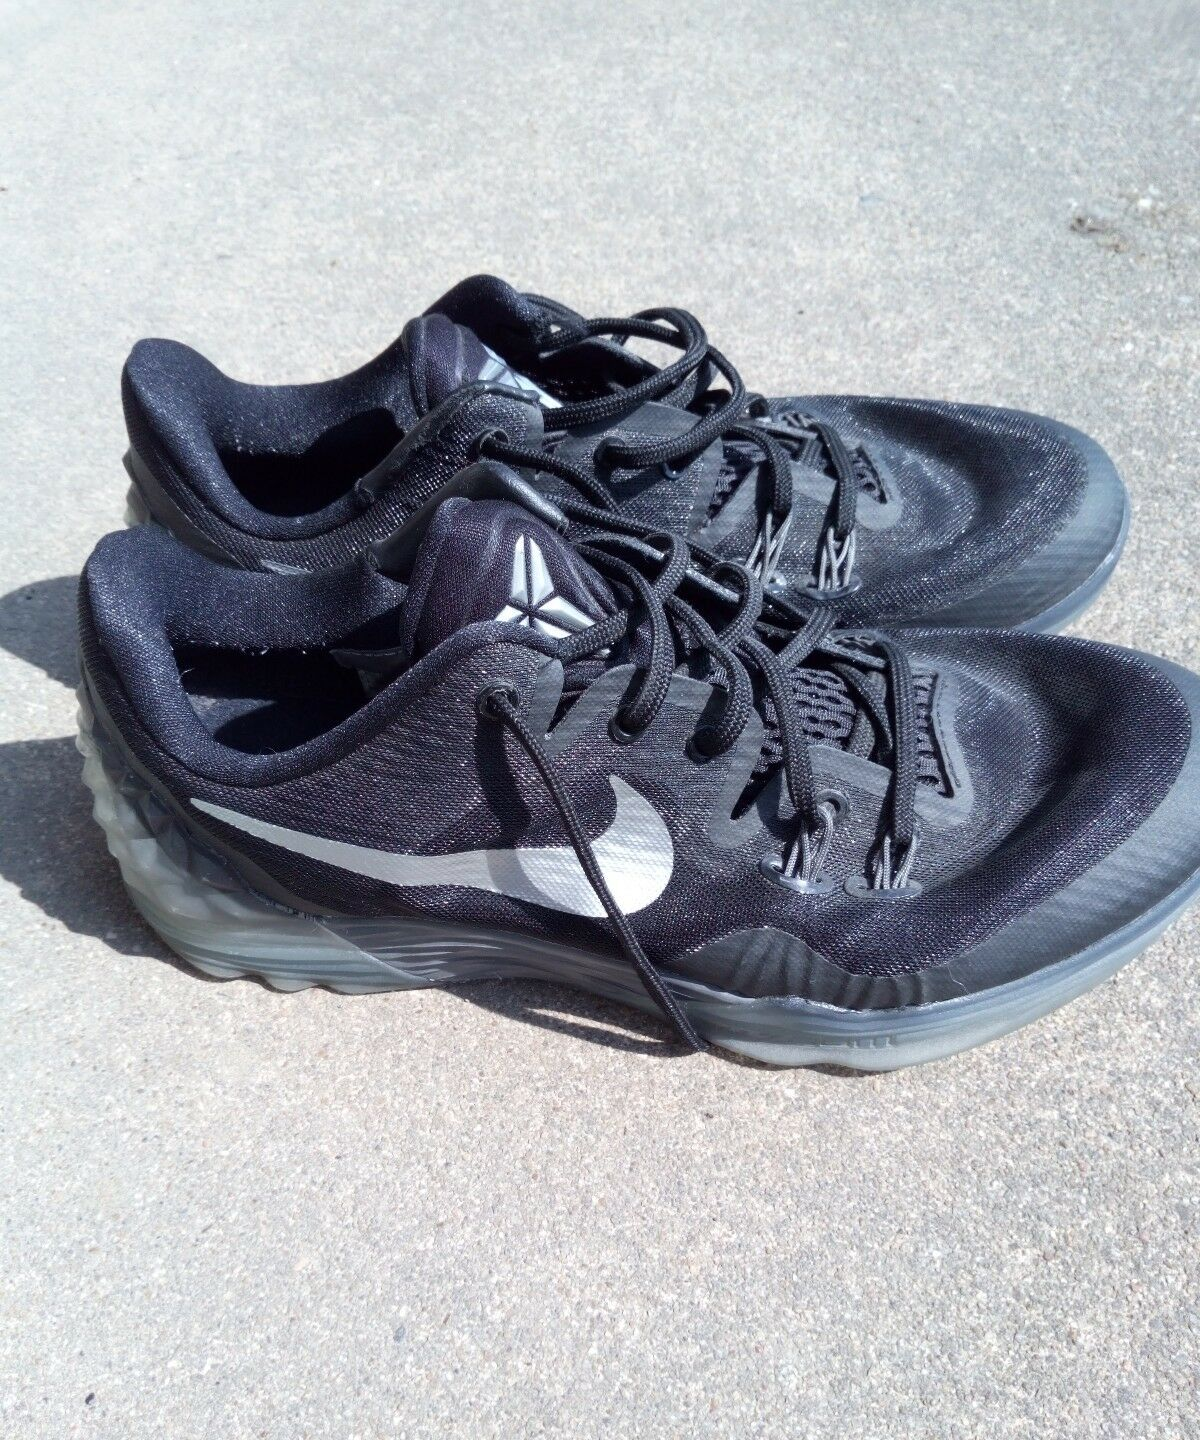 Nike Zoom Mens Running Shoes Size 8 Sneakers Black